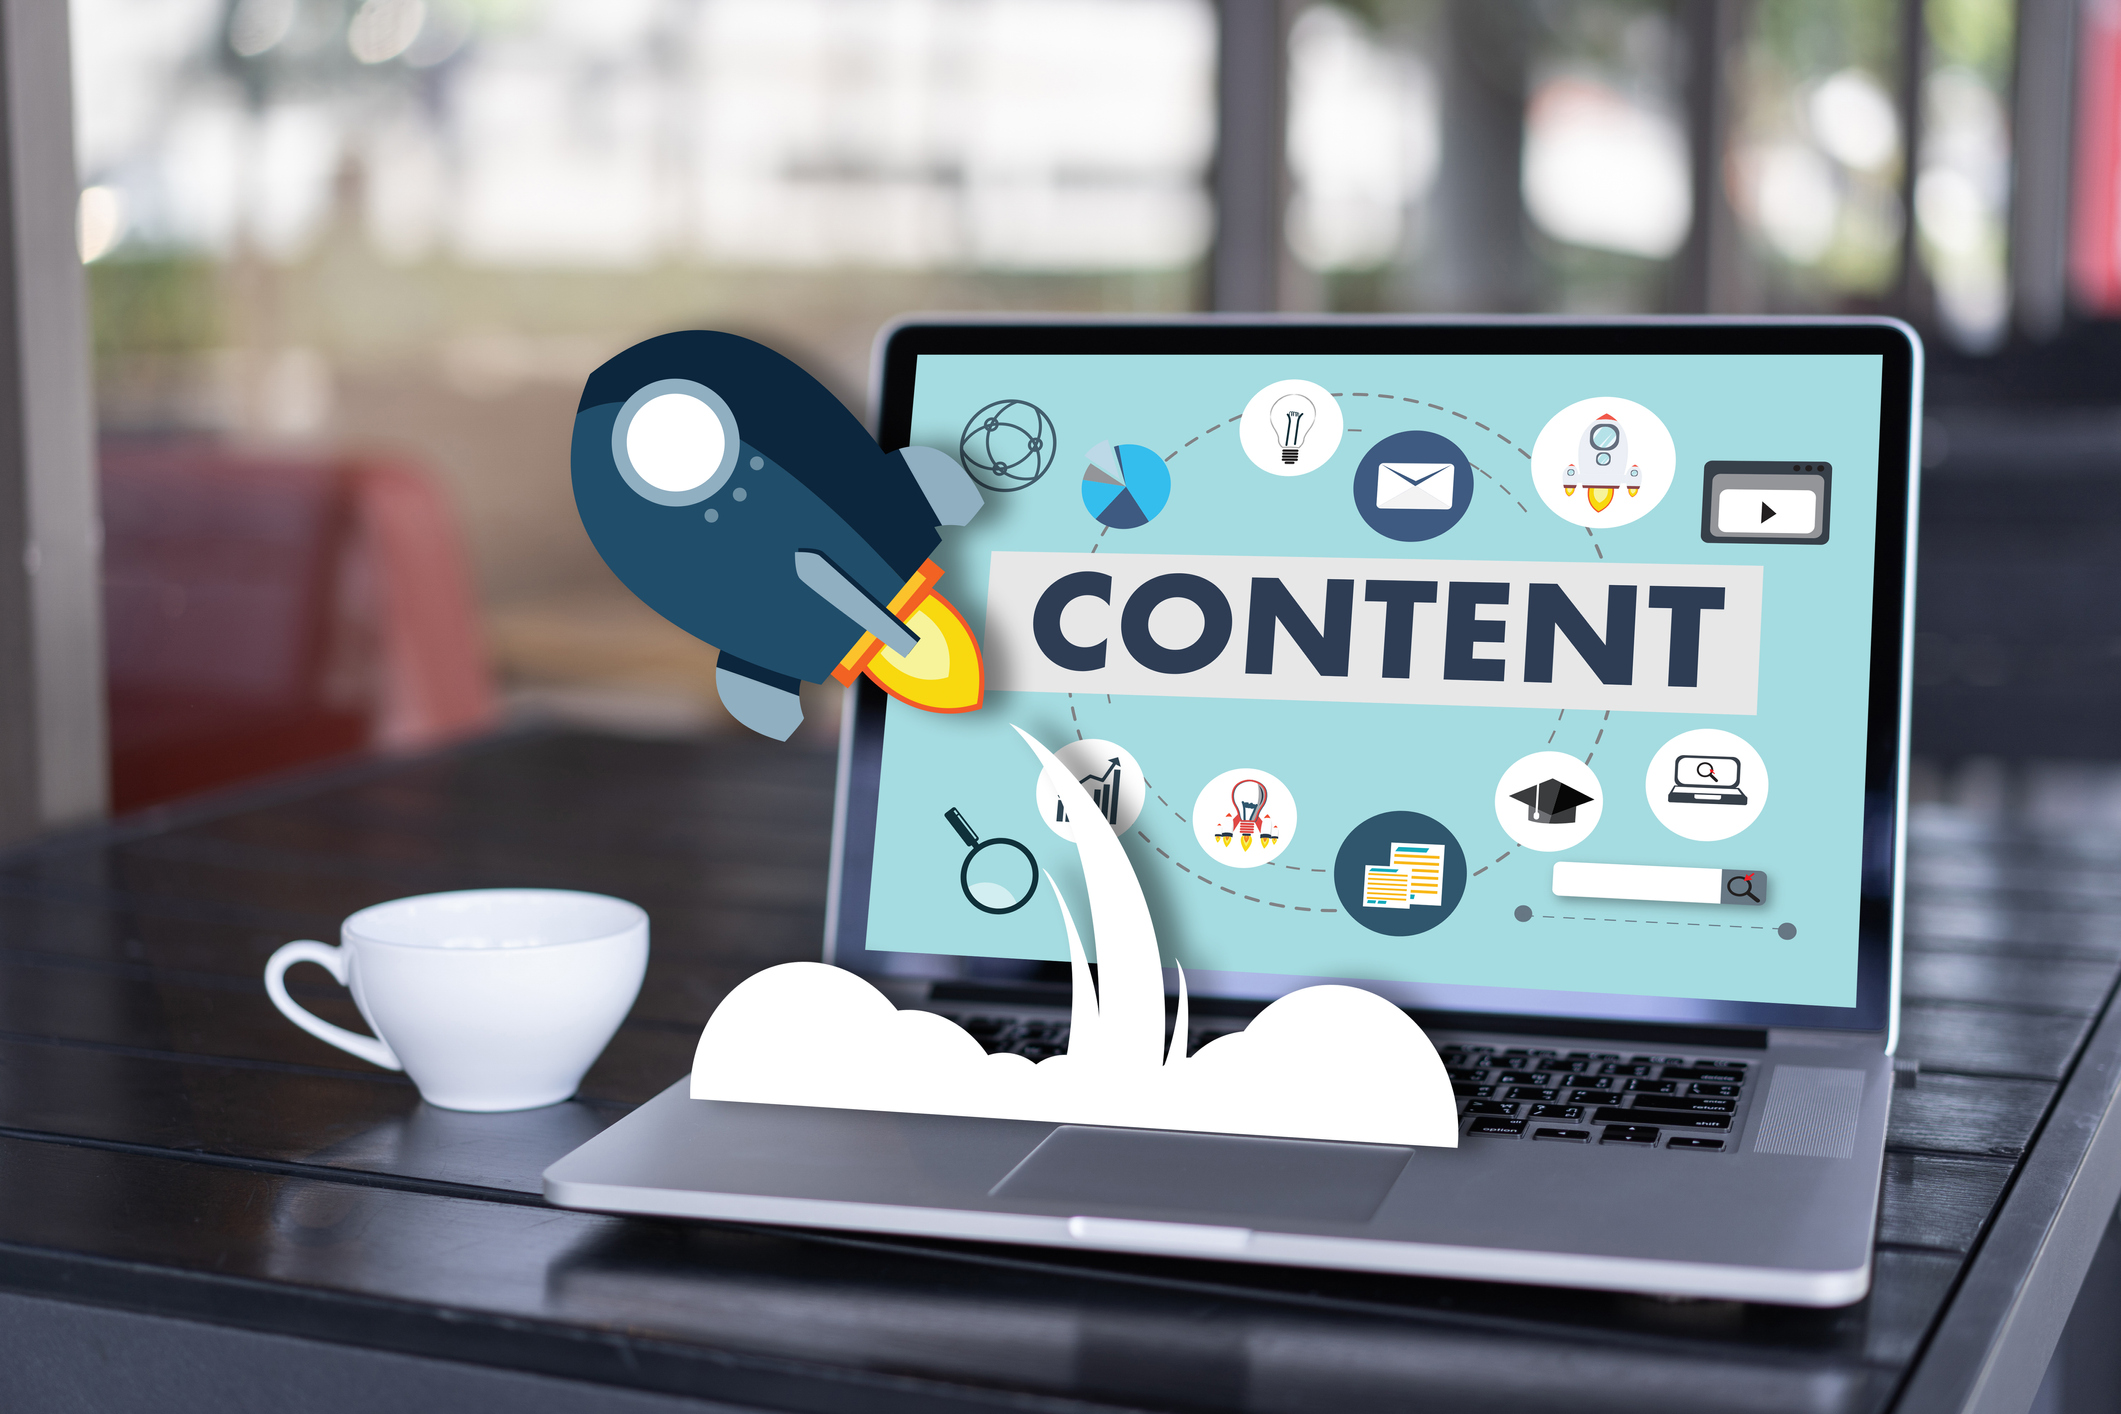 content marketing Content Data Blogging Media Publication Information Vision Concept representing content marketing for seo